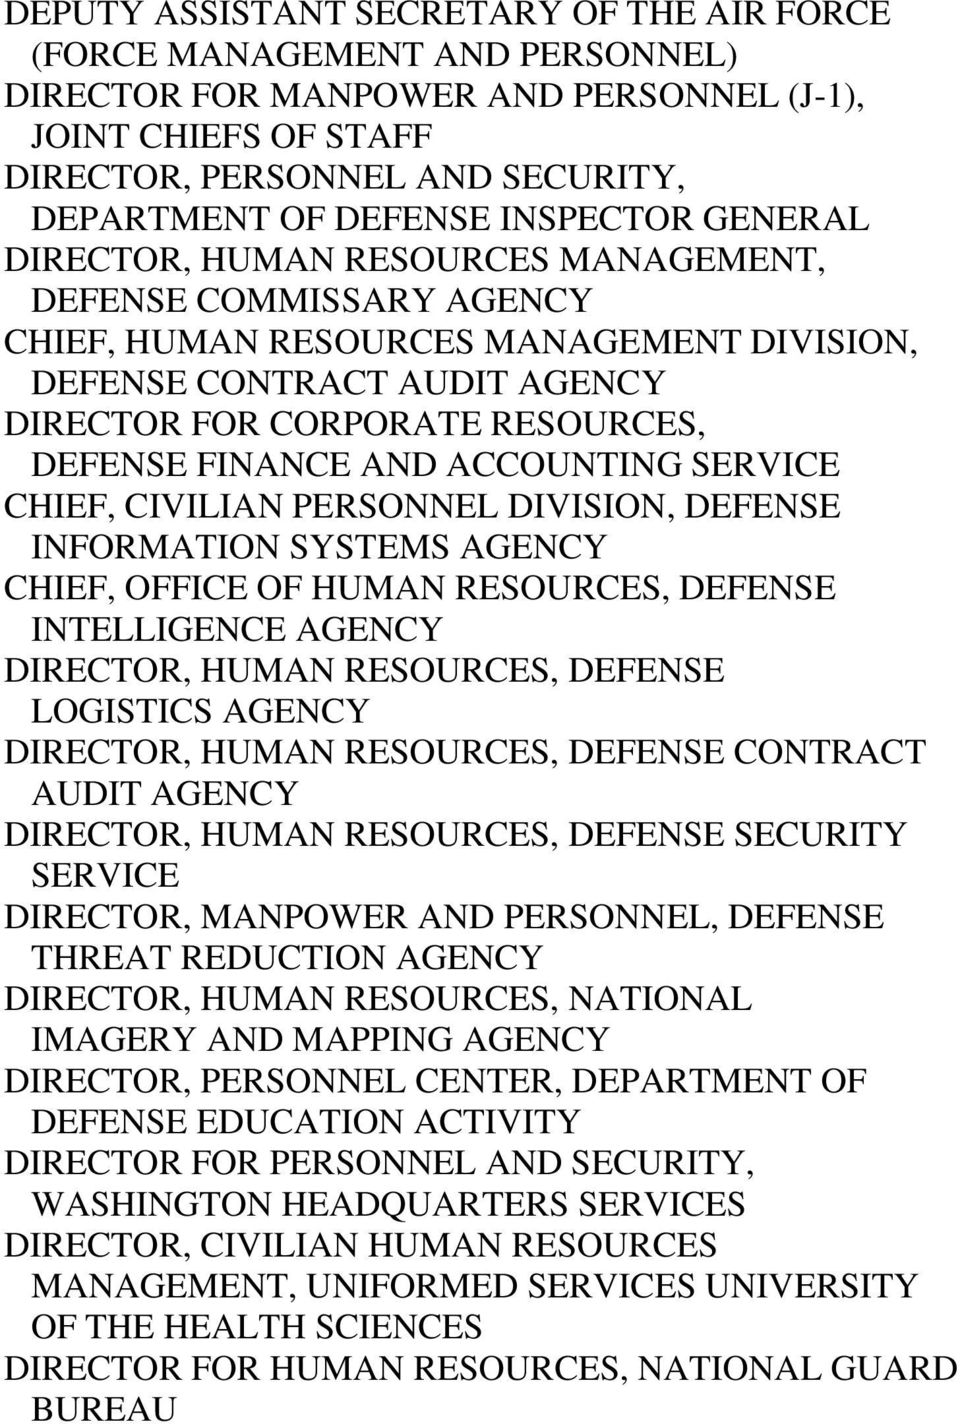 FINANCE AND ACCOUNTING SERVICE CHIEF, CIVILIAN PERSONNEL DIVISION, DEFENSE INFORMATION SYSTEMS AGENCY CHIEF, OFFICE OF HUMAN RESOURCES, DEFENSE INTELLIGENCE AGENCY DIRECTOR, HUMAN RESOURCES, DEFENSE